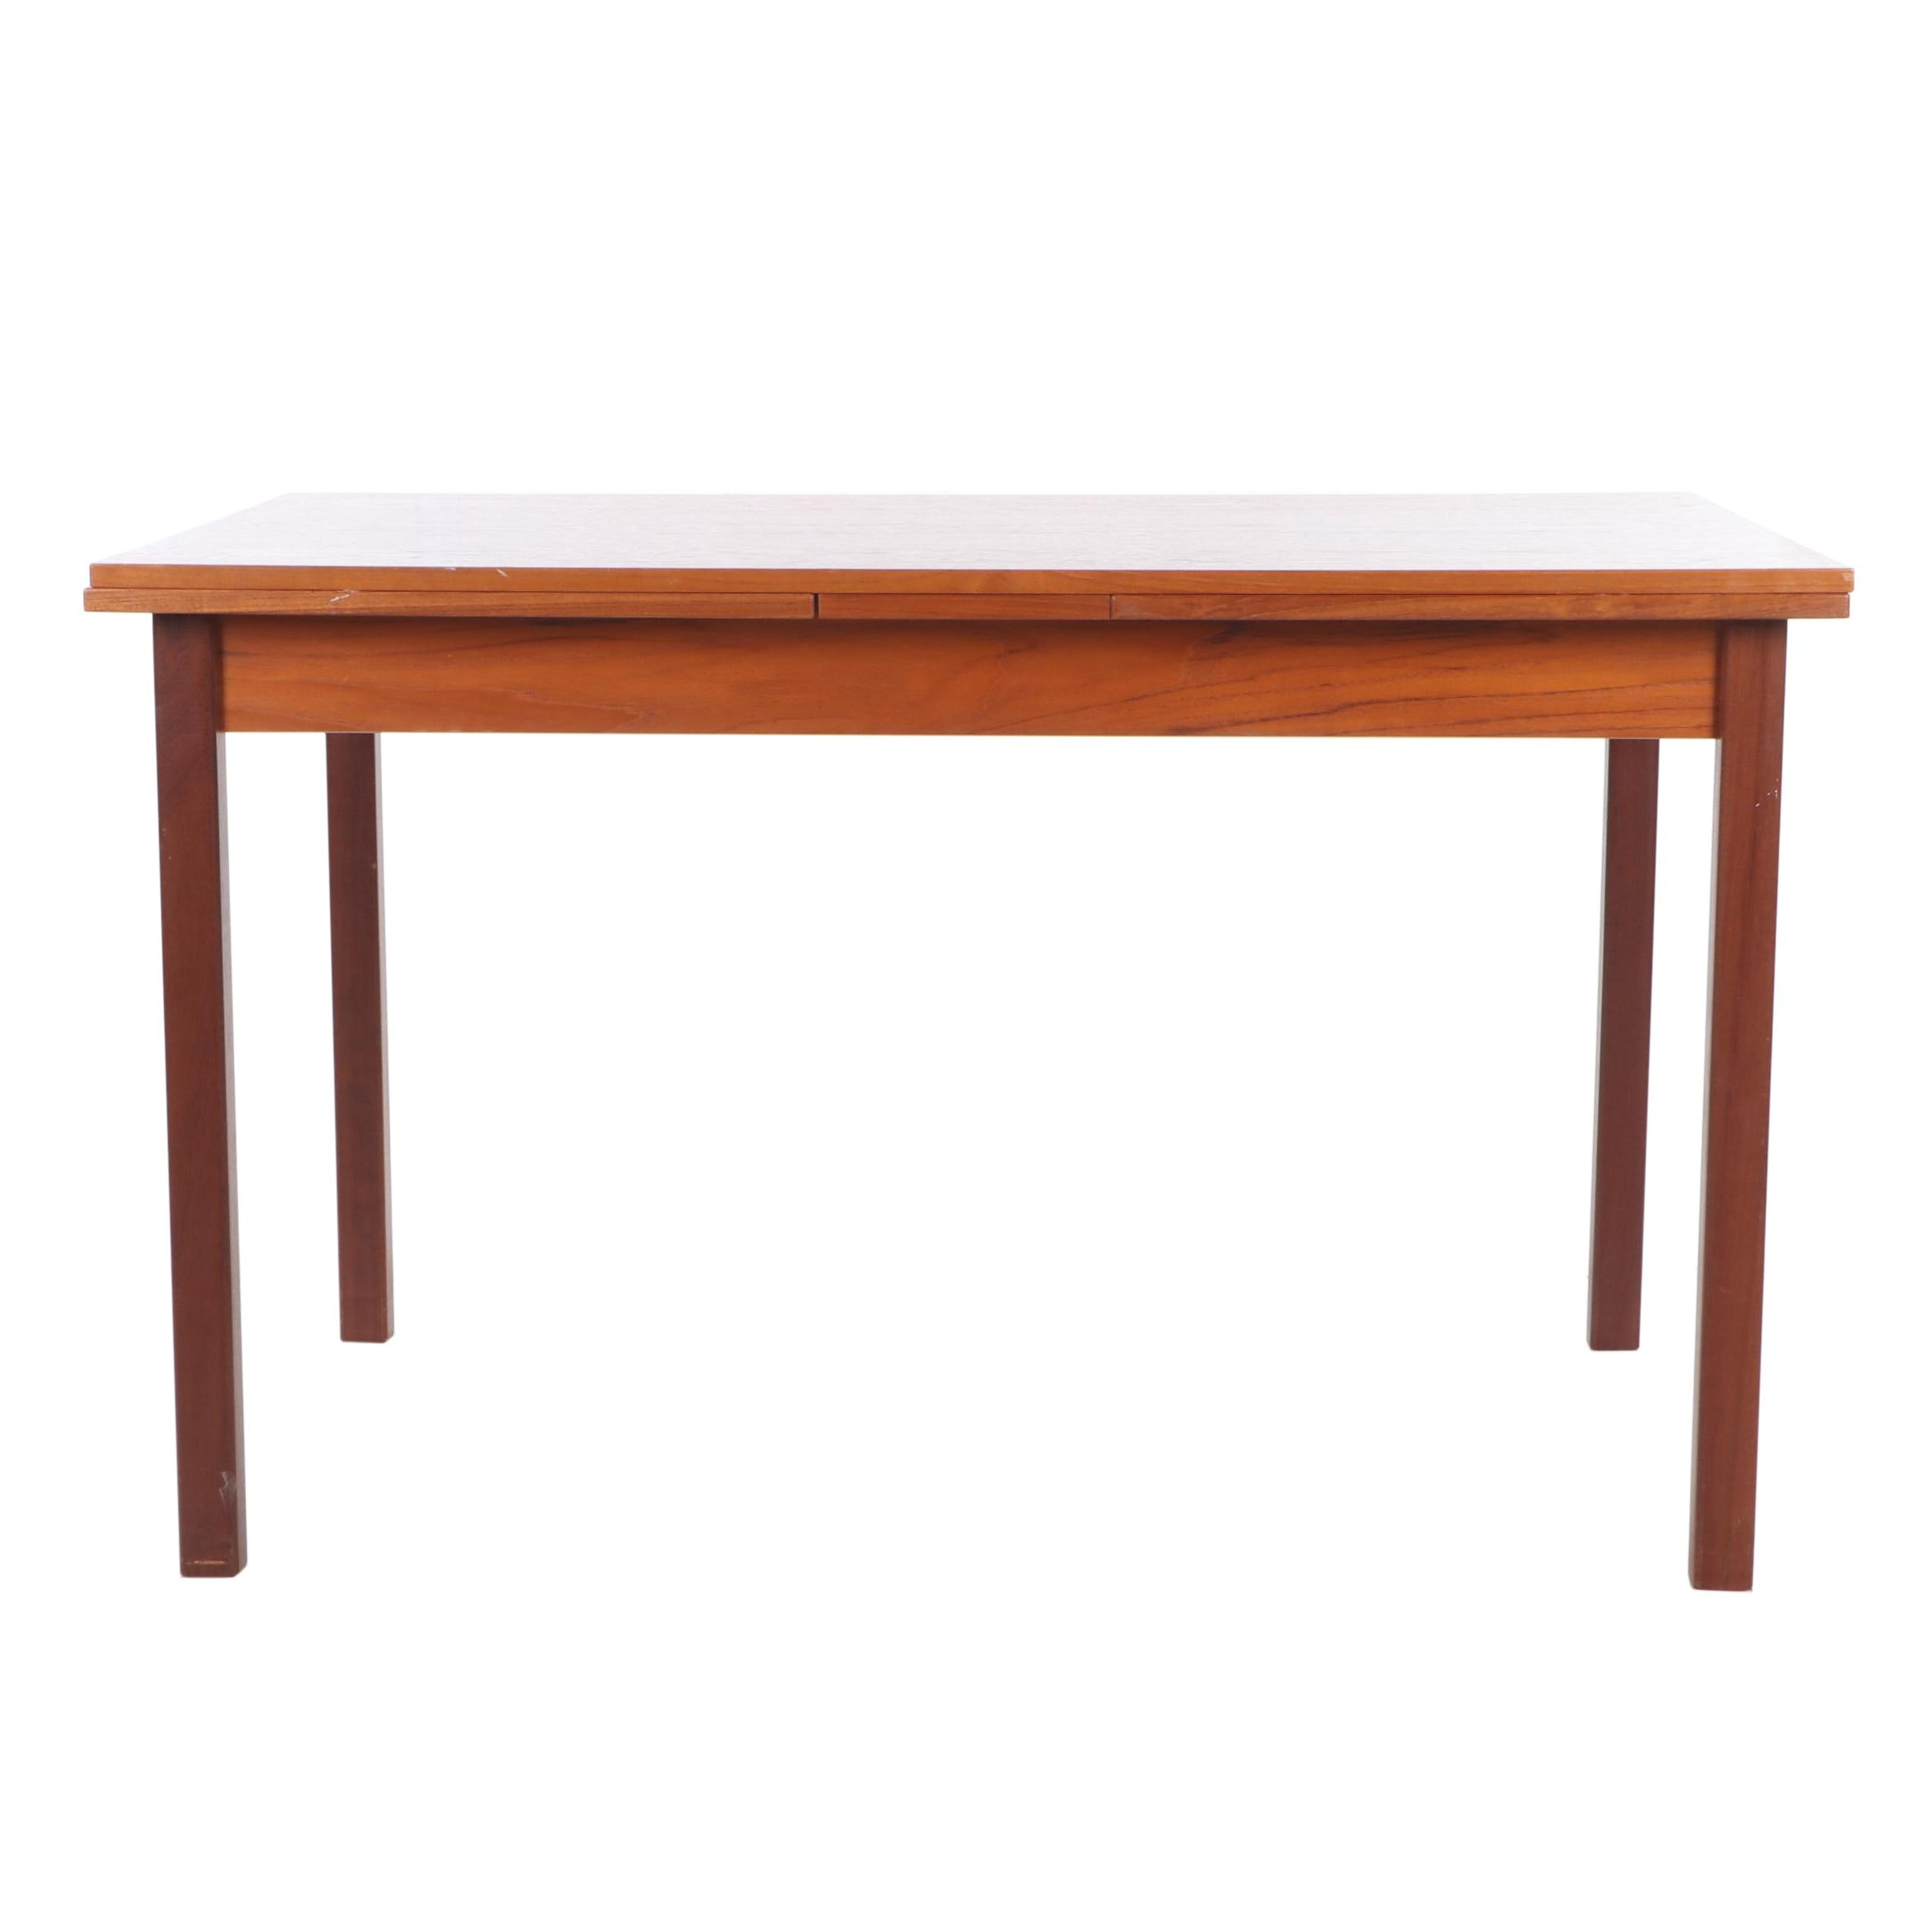 Mid-Century Brdr. Furbo Danish Modern Teak Extension Dining Table